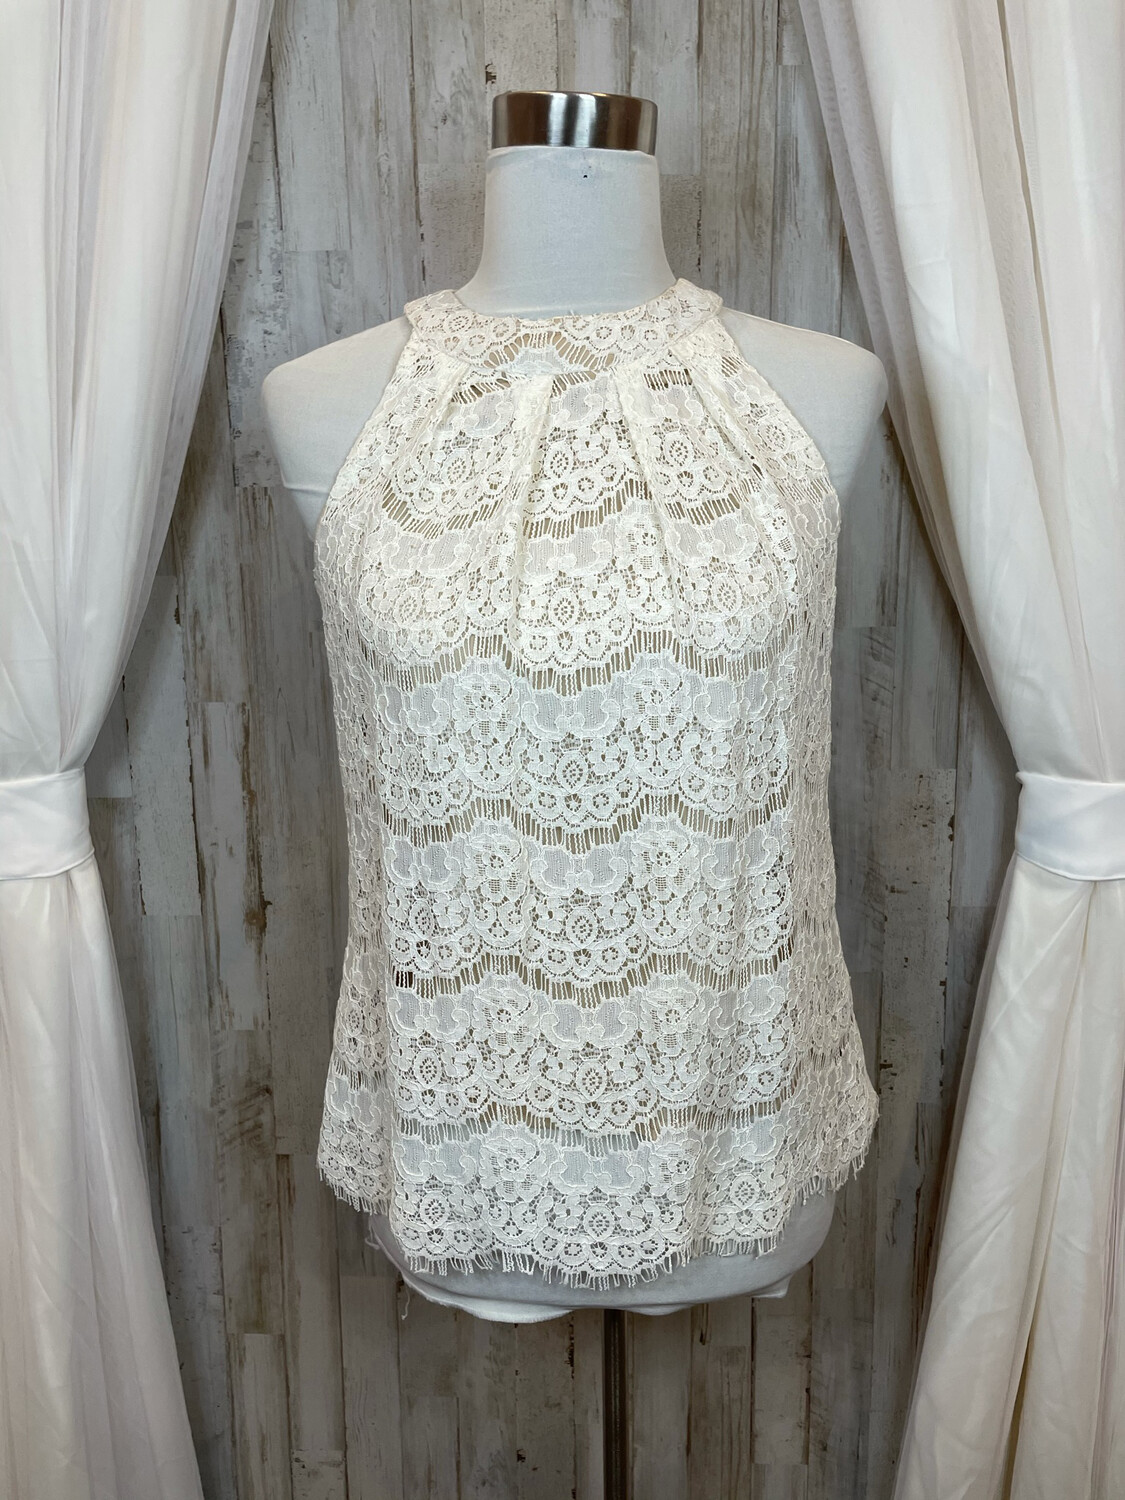 Rose & Olive Cream Lace Tank - S